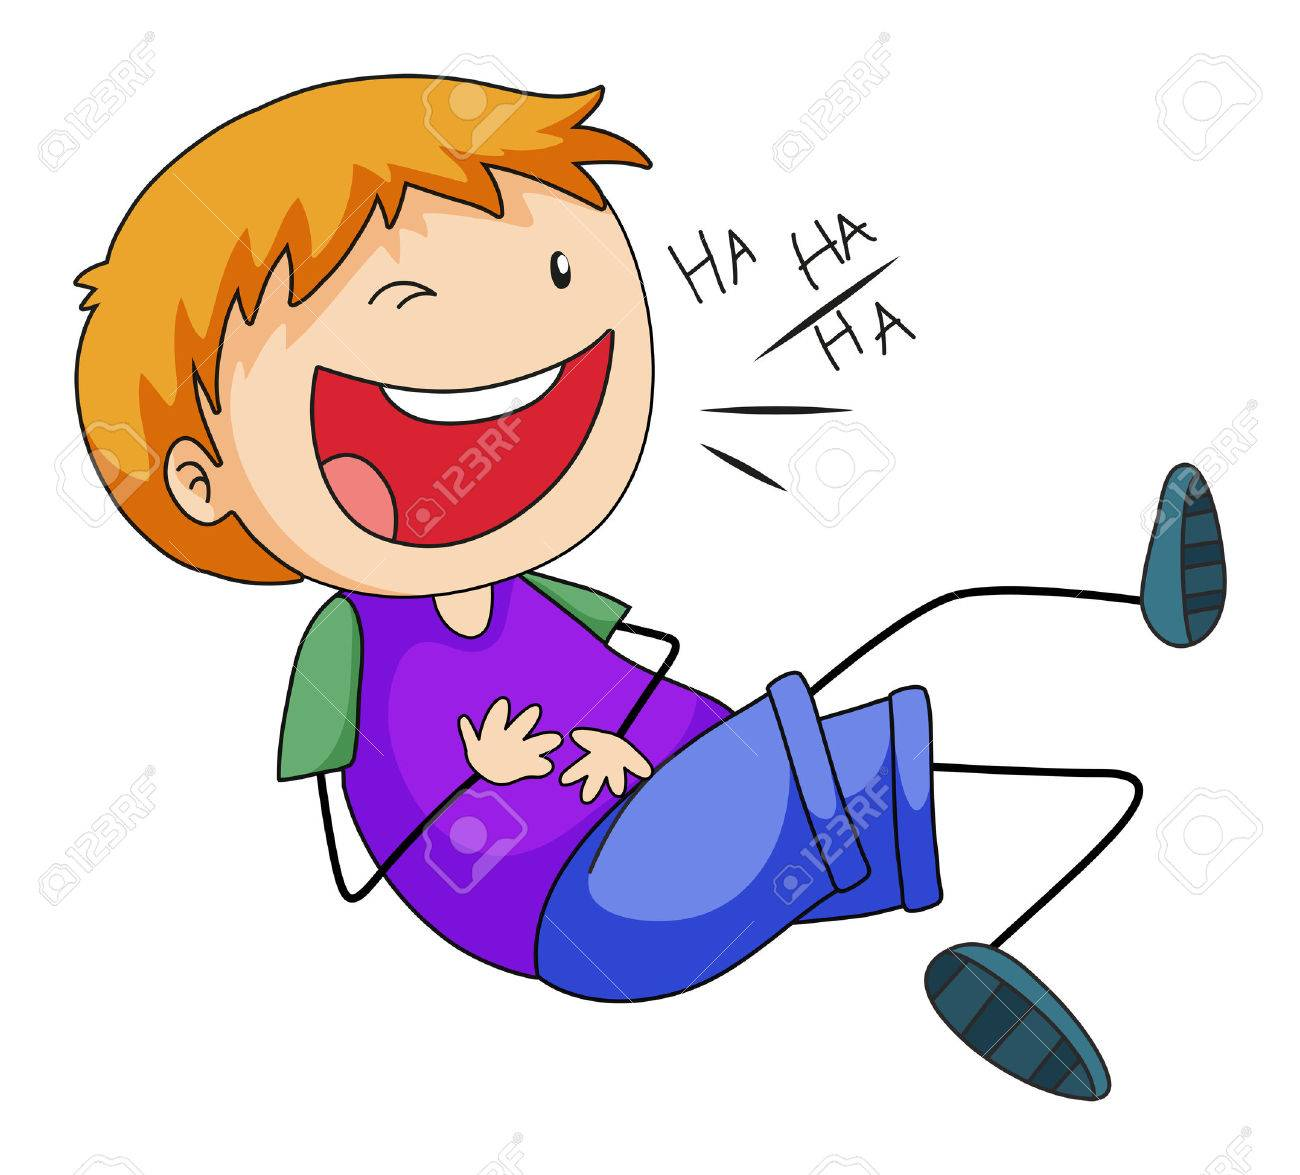 Nsa_traf_cam_london2847 clipart jpg library library Laugh clipart - 62 transparent clip arts, images and ... jpg library library